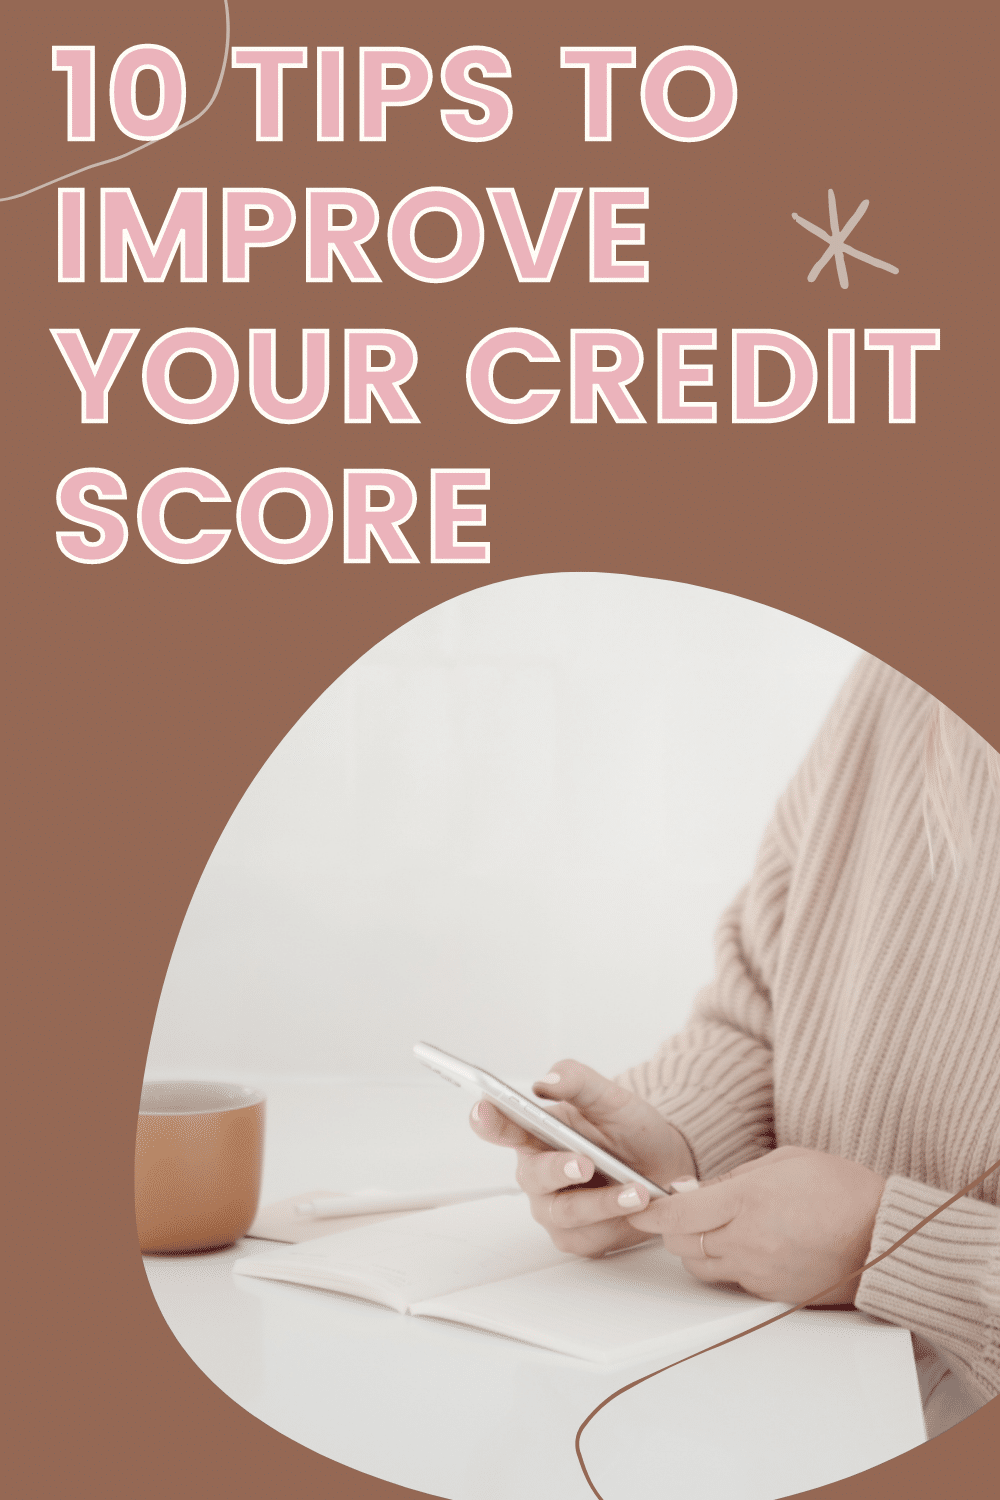 improve-your-credit-score-today